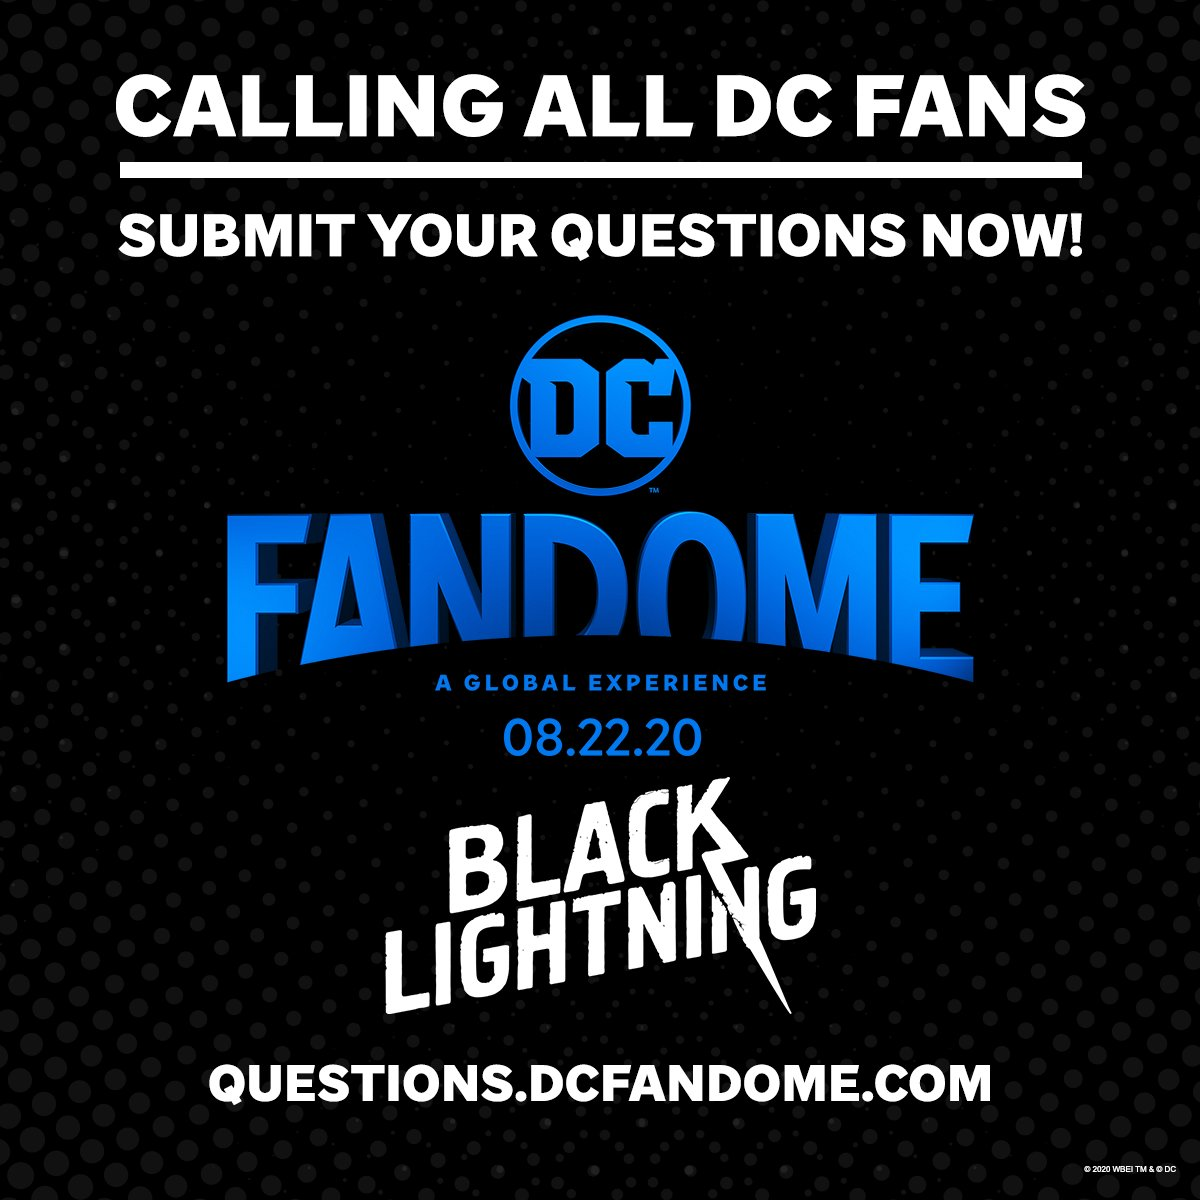 You've got questions! We've got answers. Submit your questions now about the DC Multiverse, and see if they're answered during #DCFanDome: https://t.co/ChlMEApKOU https://t.co/fxC1EptLdI